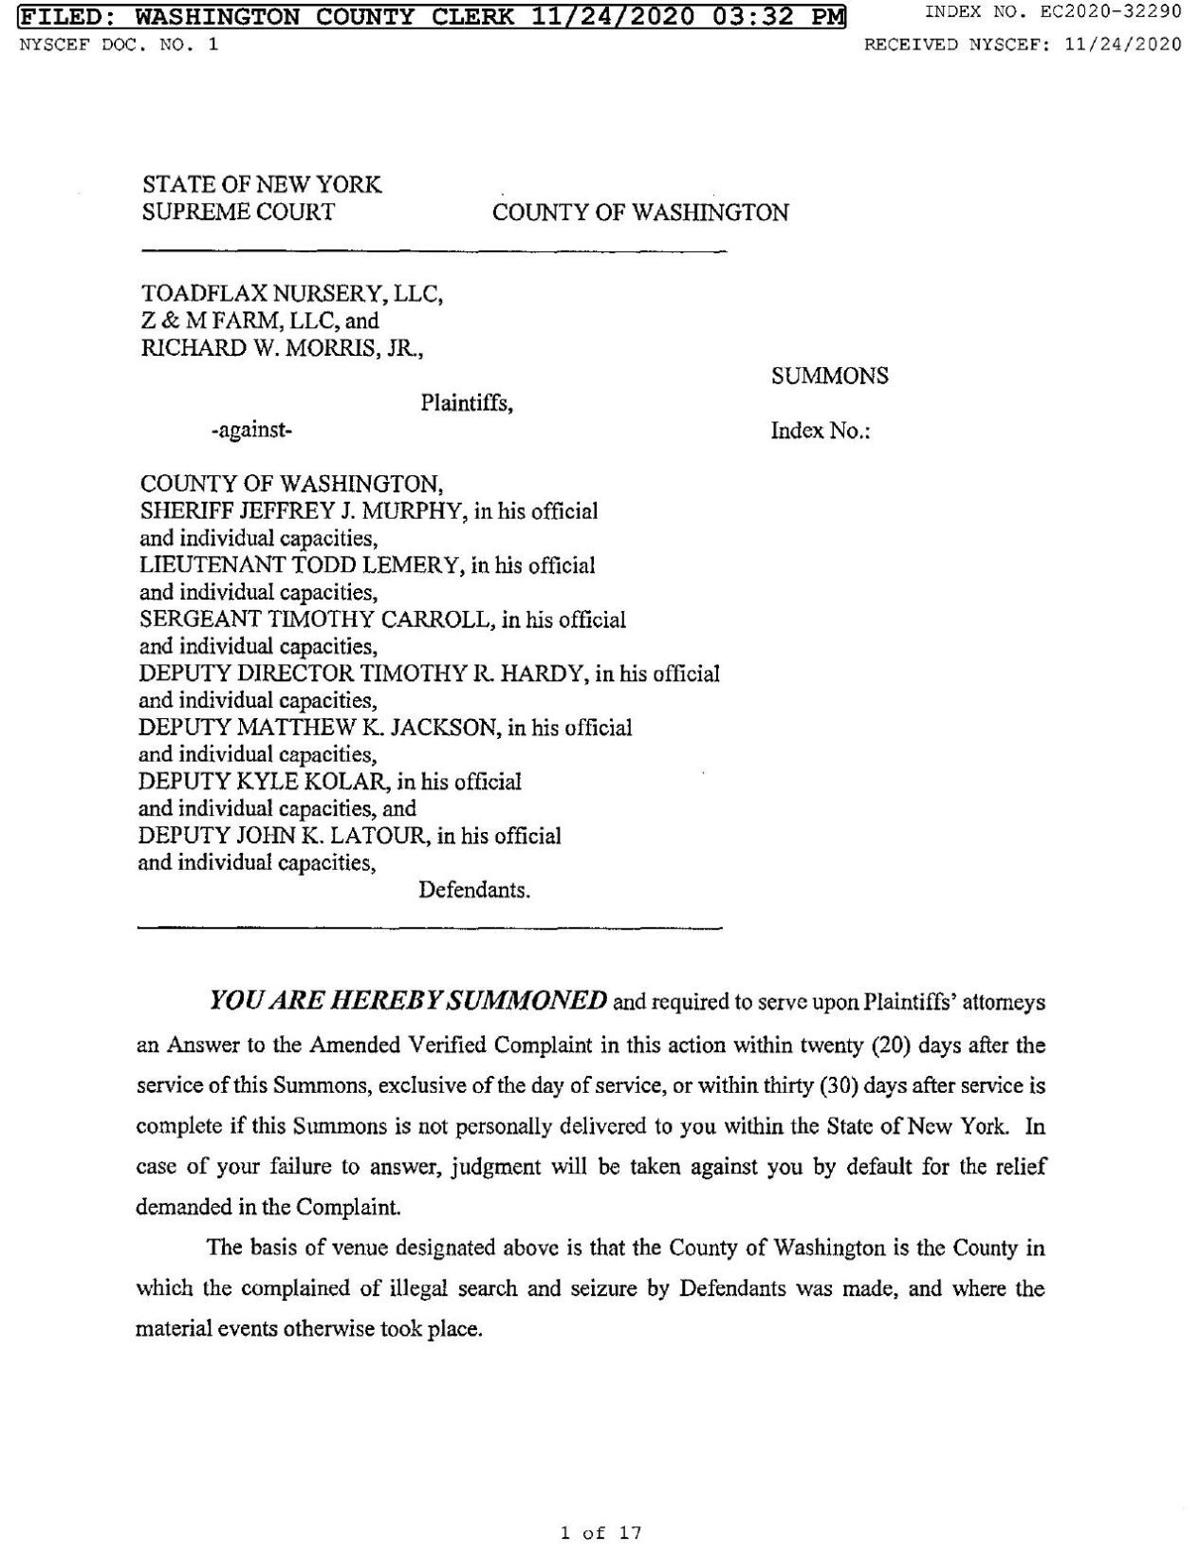 Toadflax lawsuit